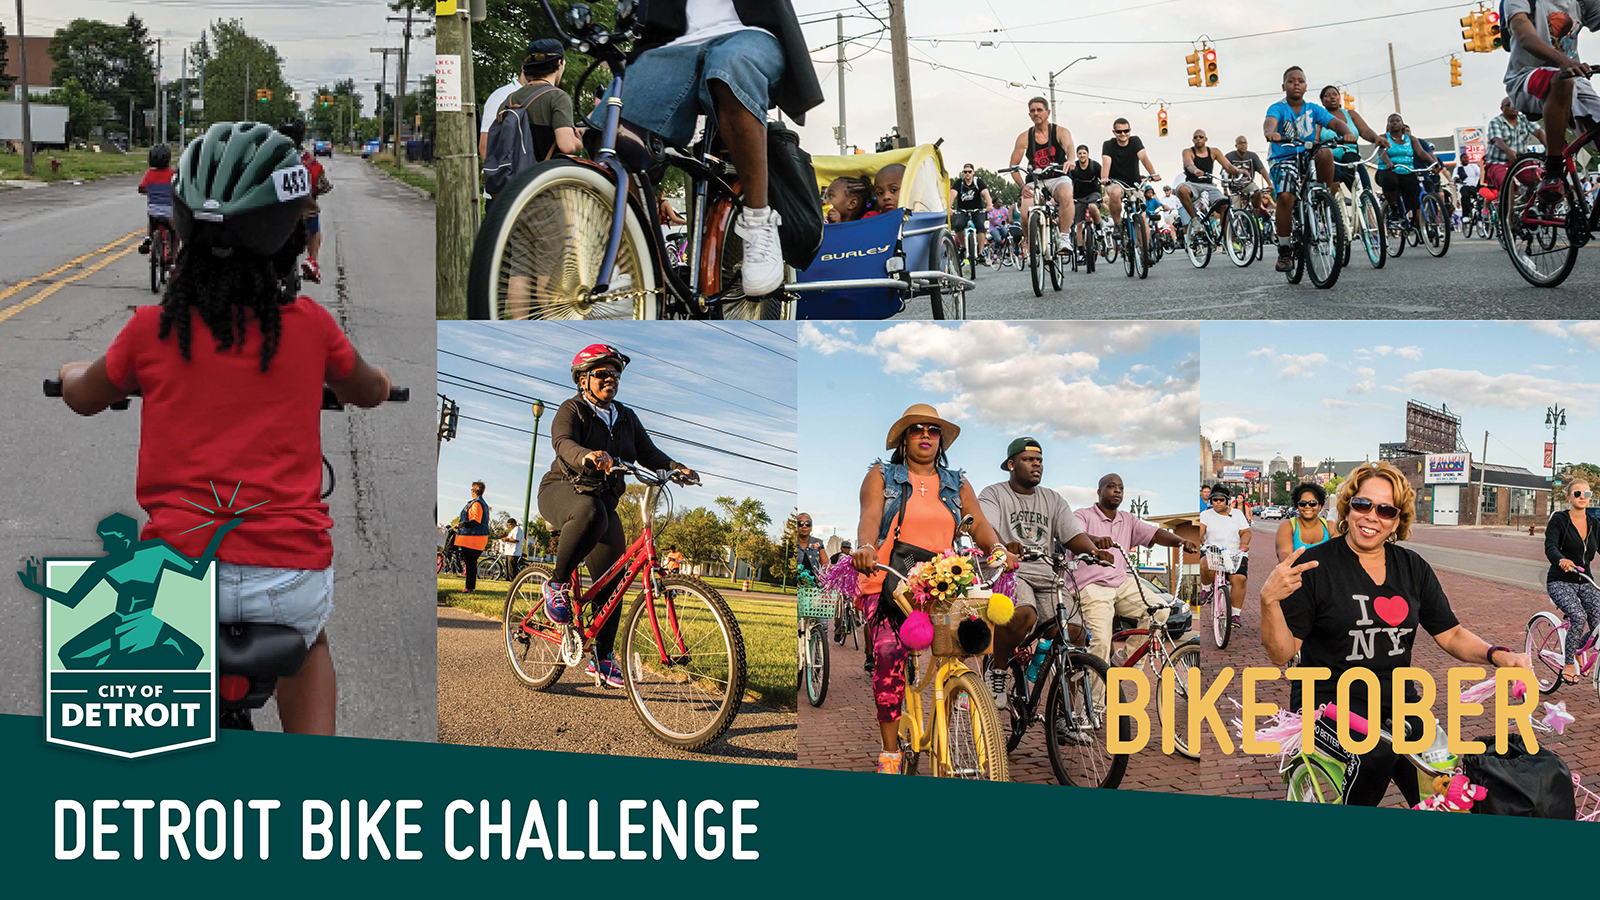 """A collage of photos of people riding bikes with a text overlay that says """"Biketober - Detroit Bike Challenge"""""""